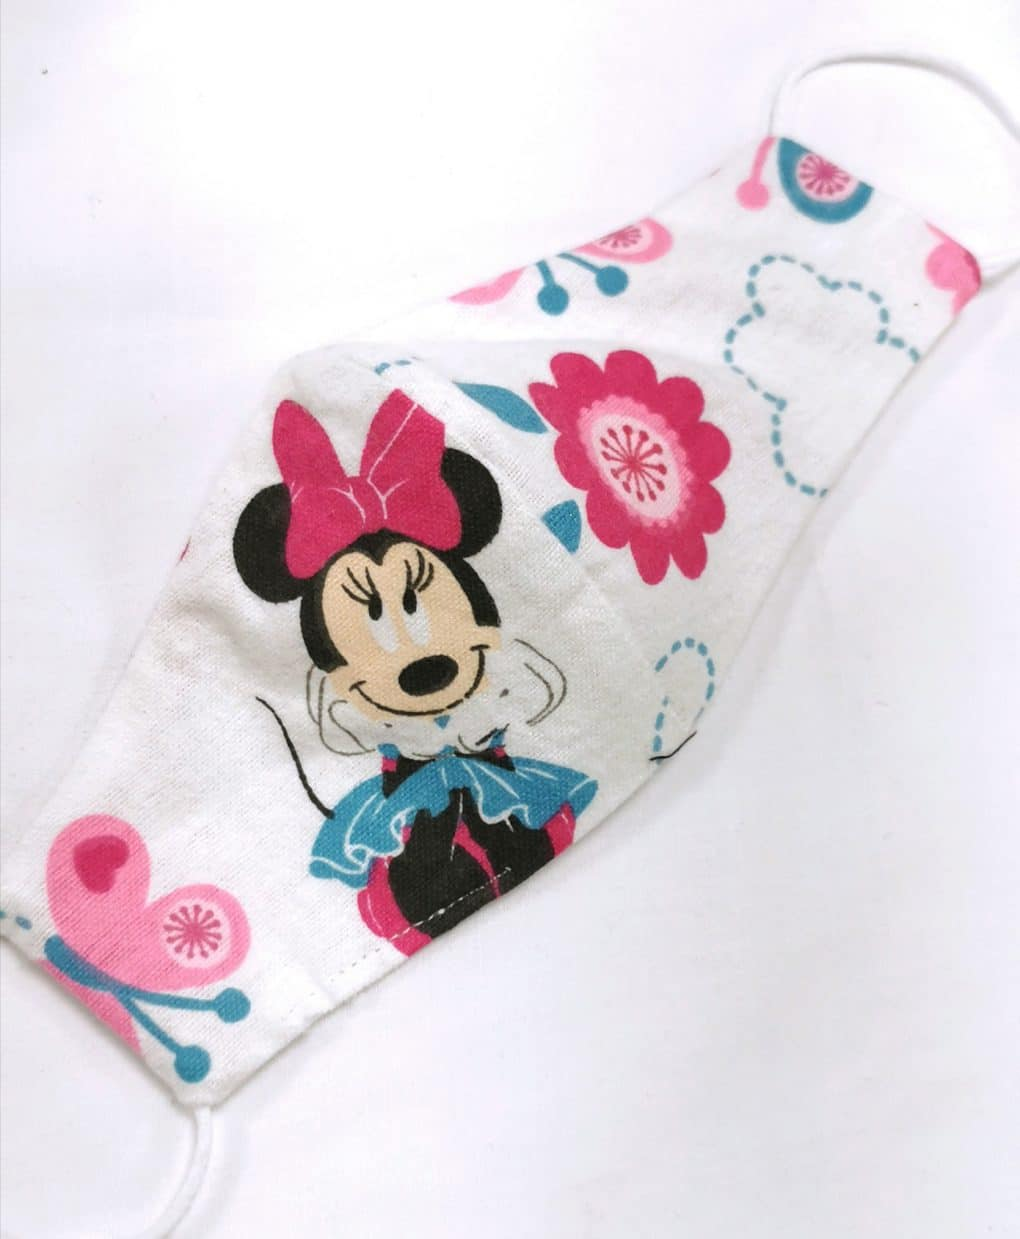 Minnie-Mouse-Cotton-Disney-Face-Covering-Alila